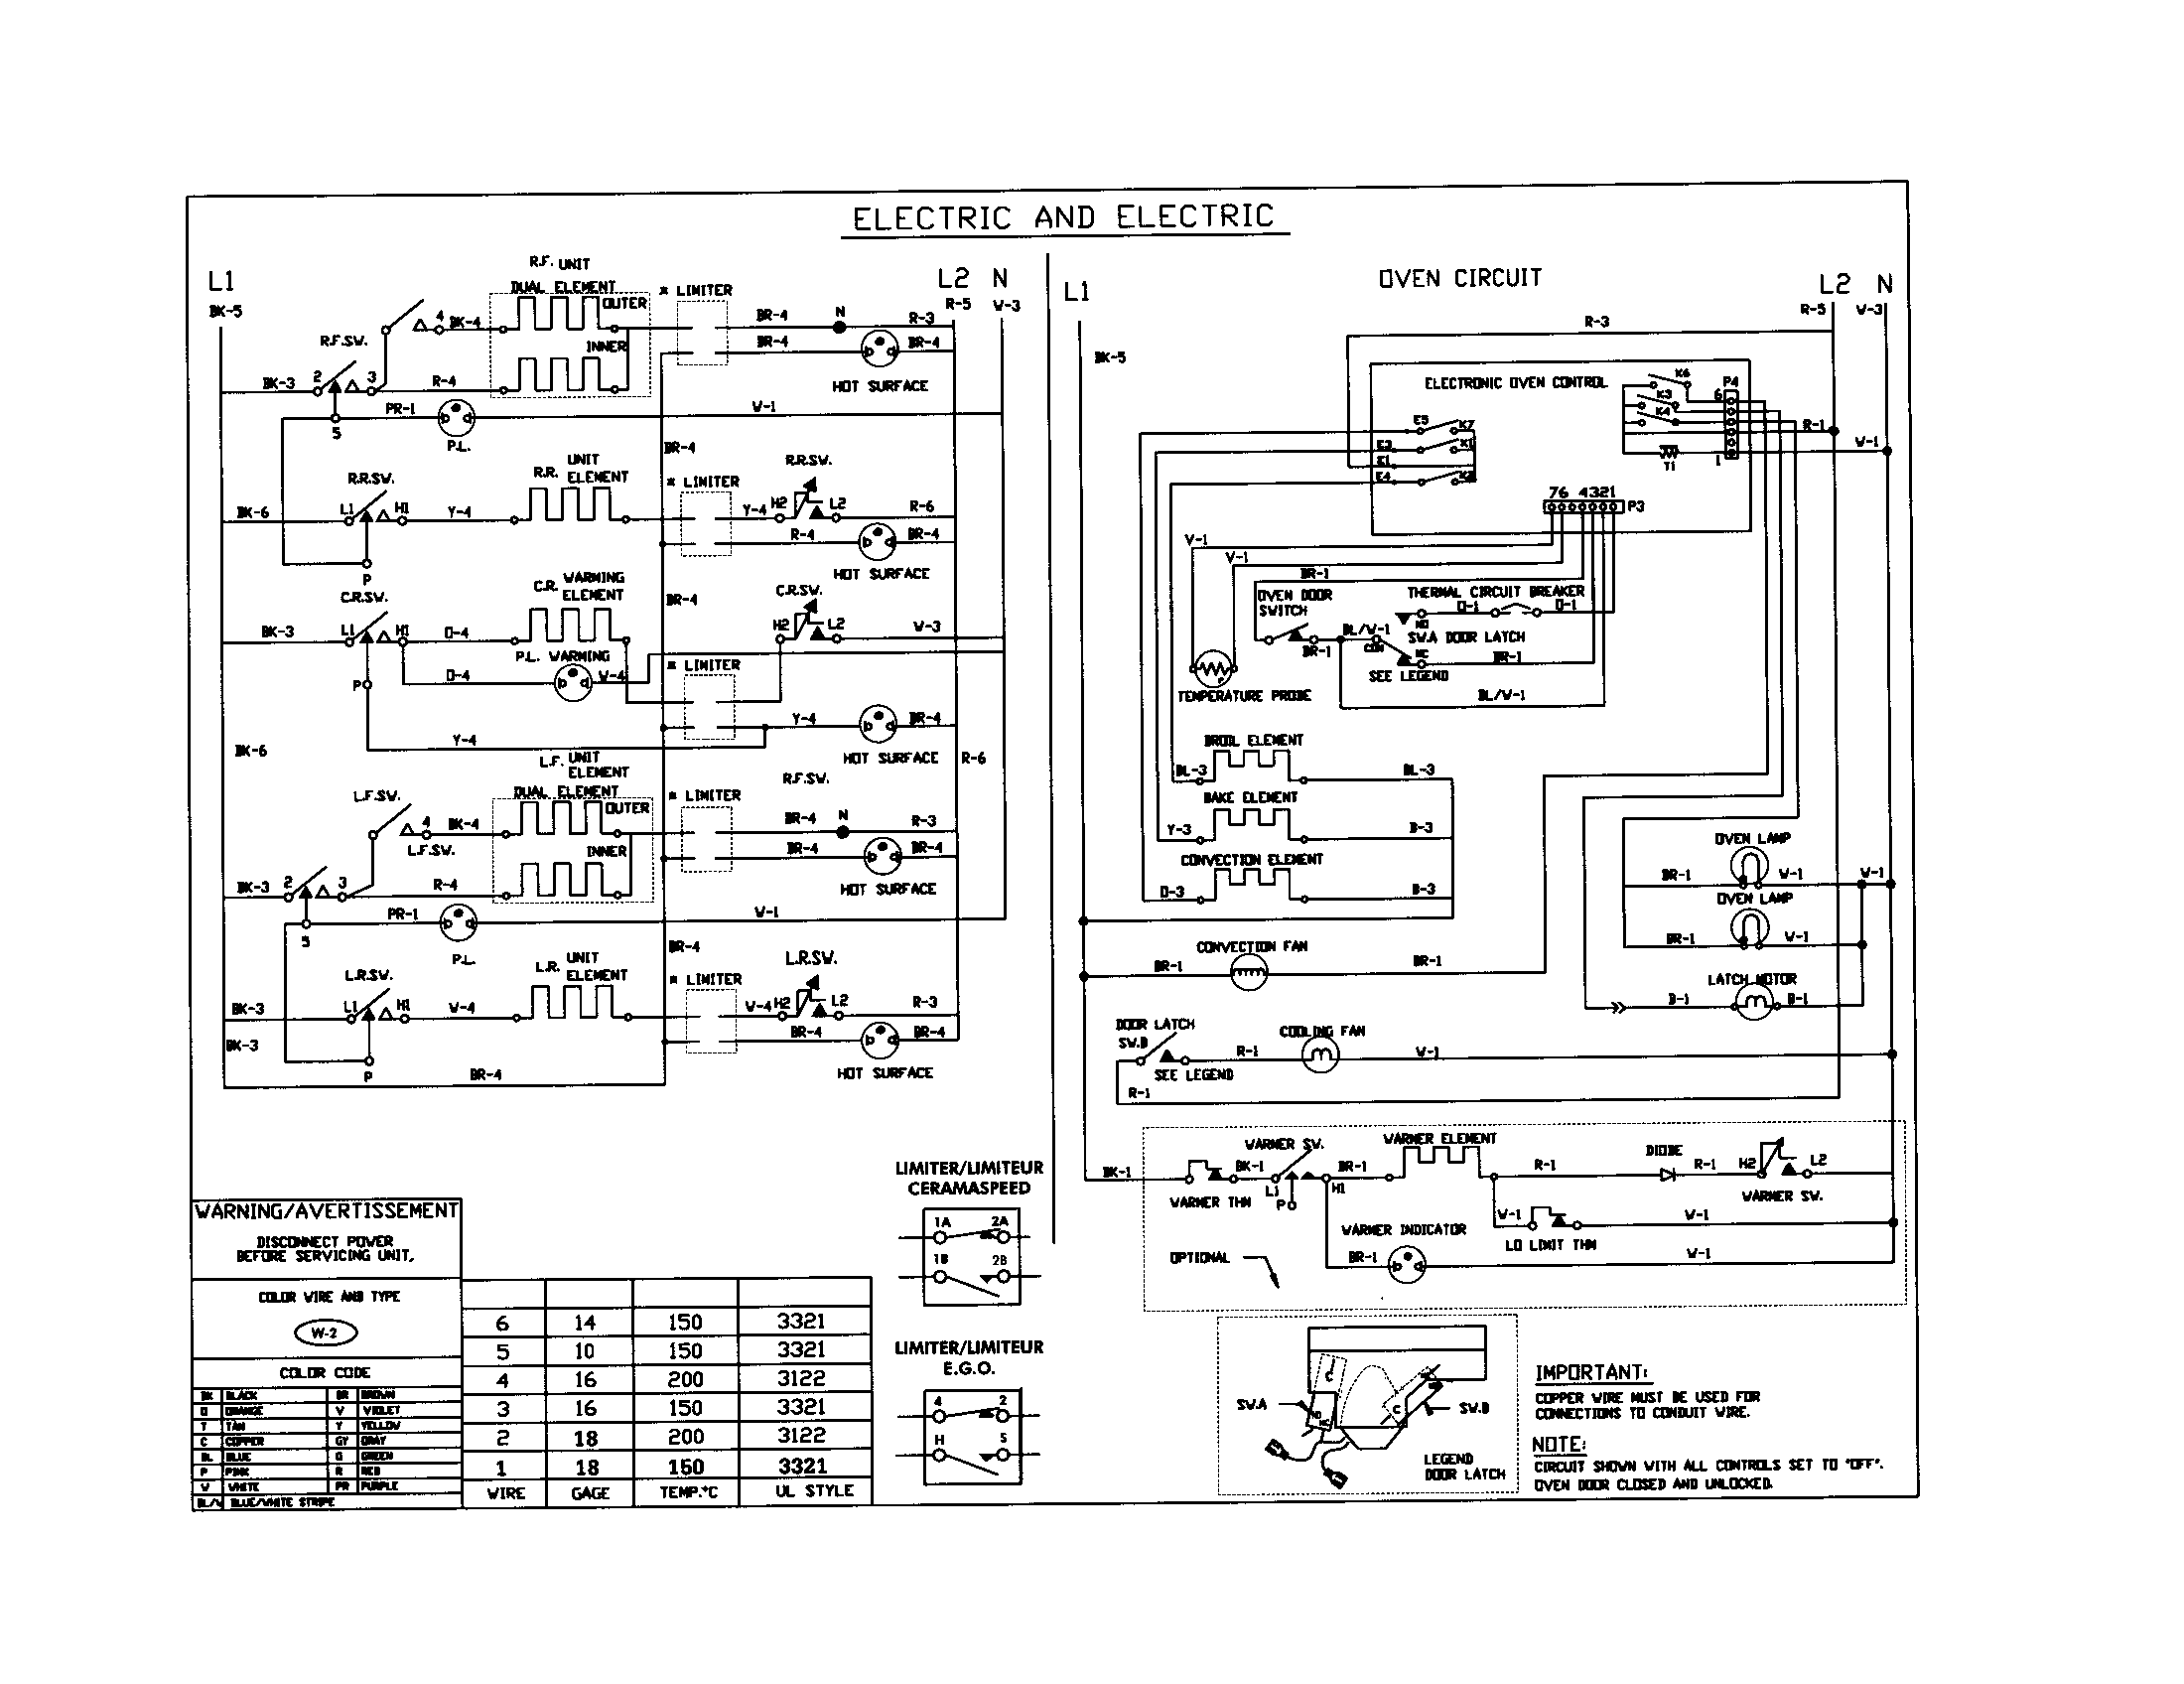 P0050376 00005?resize\=665%2C512 kenmore dryer model 11087872602 wiring diagram kenmore wiring  at eliteediting.co